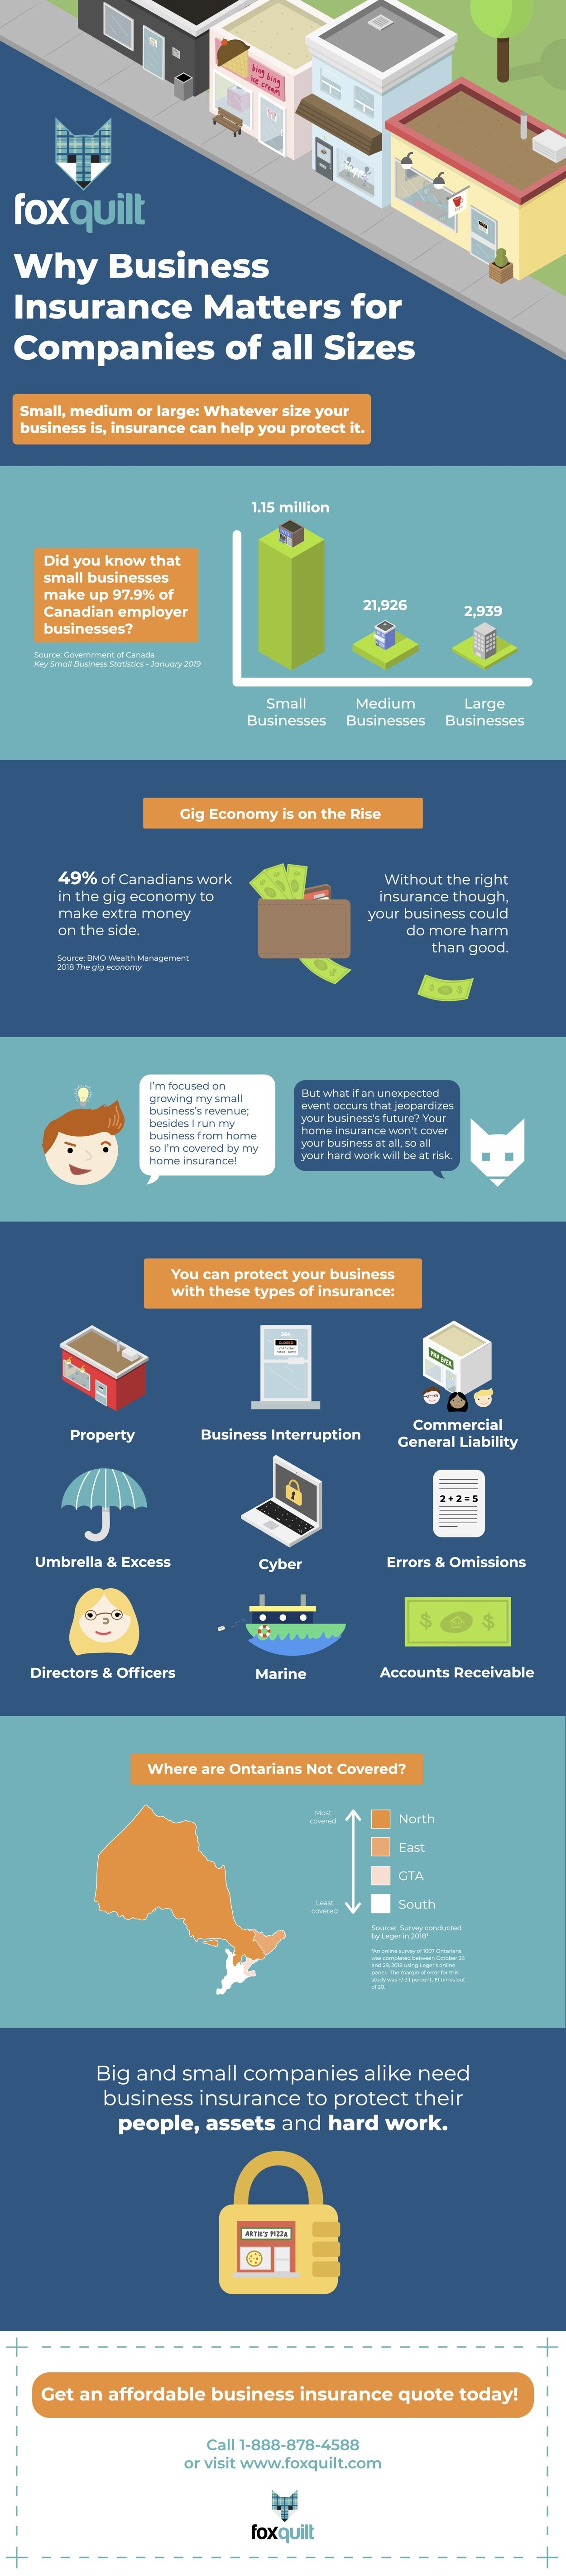 Why Business Insurance Matters for Companies of all sizes (Infographic)